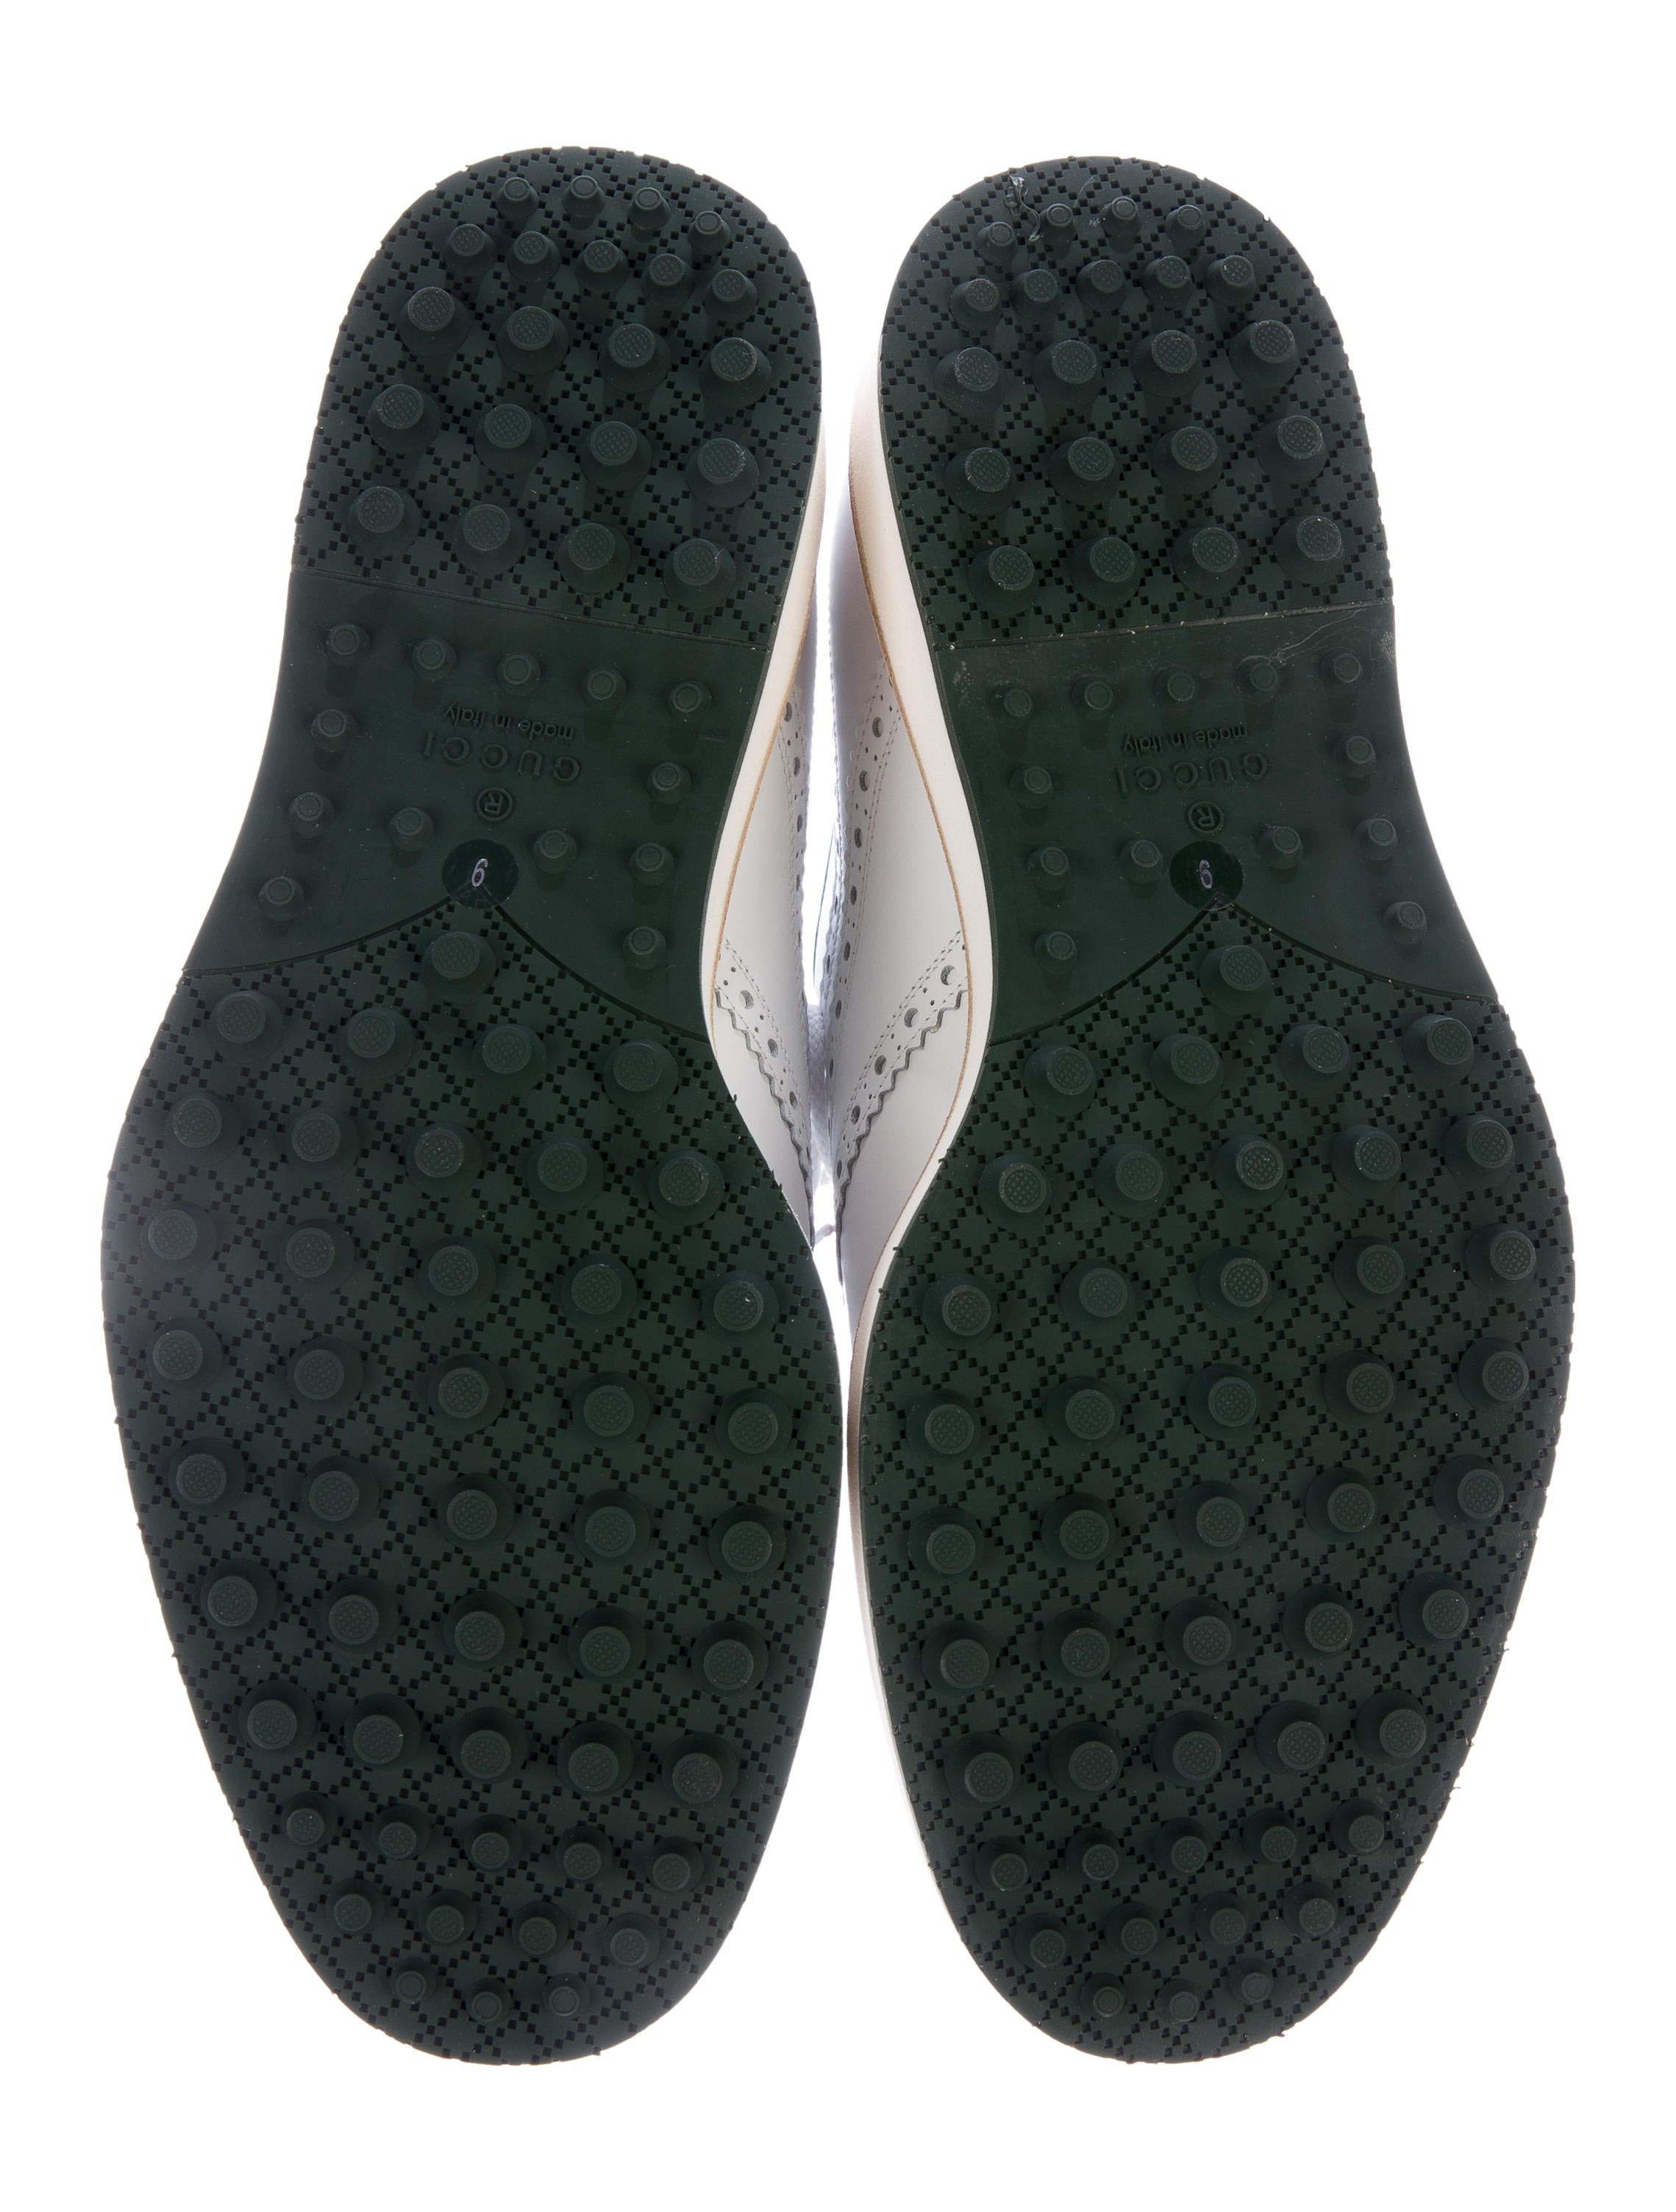 Made To Measure Golf Shoes Uk